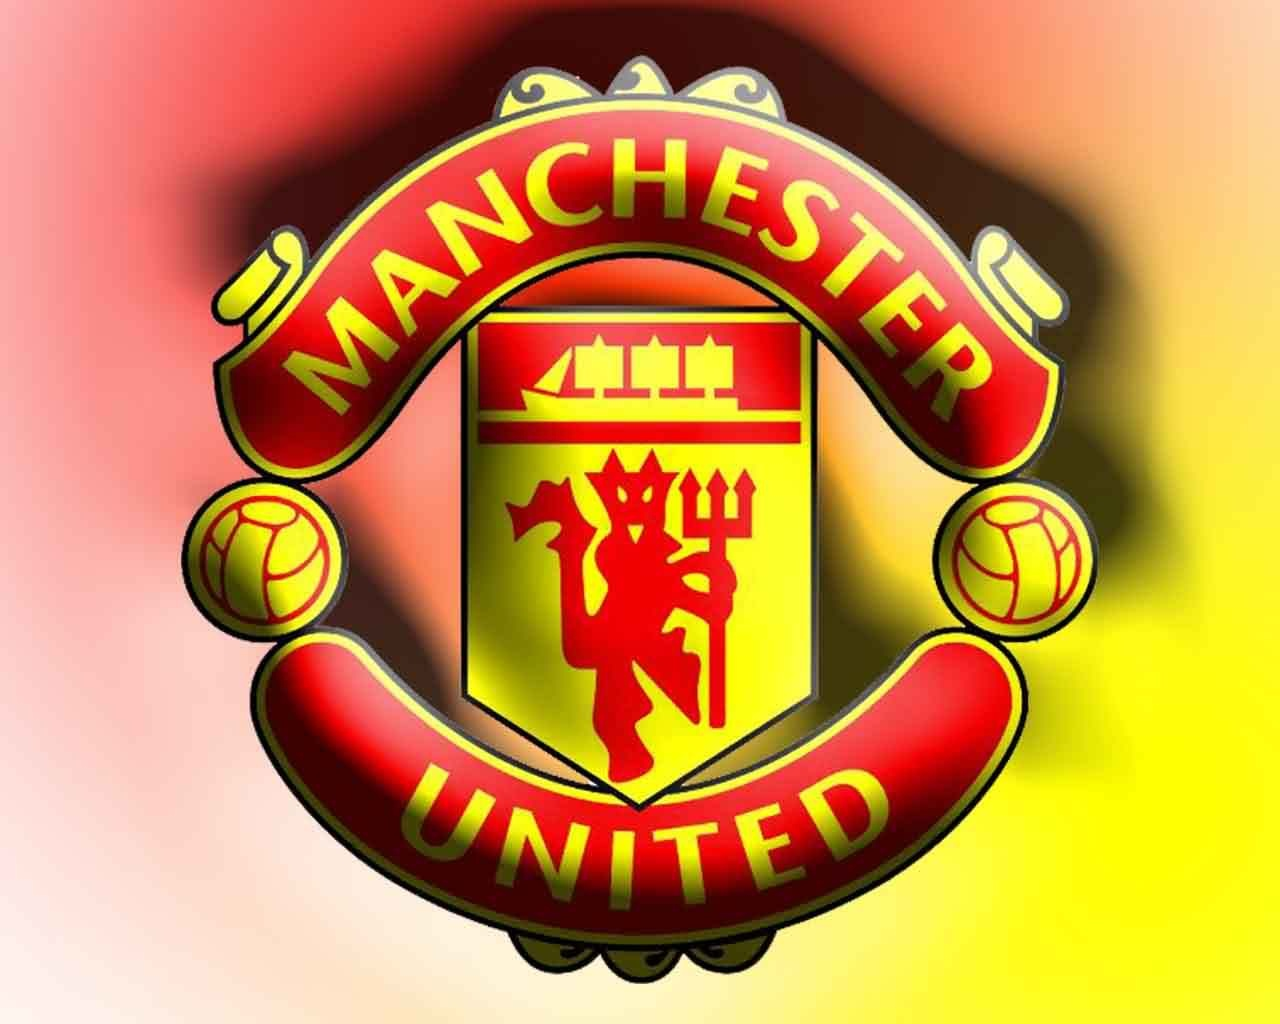 Download Wallpaper Manchester United Bergerak Logo